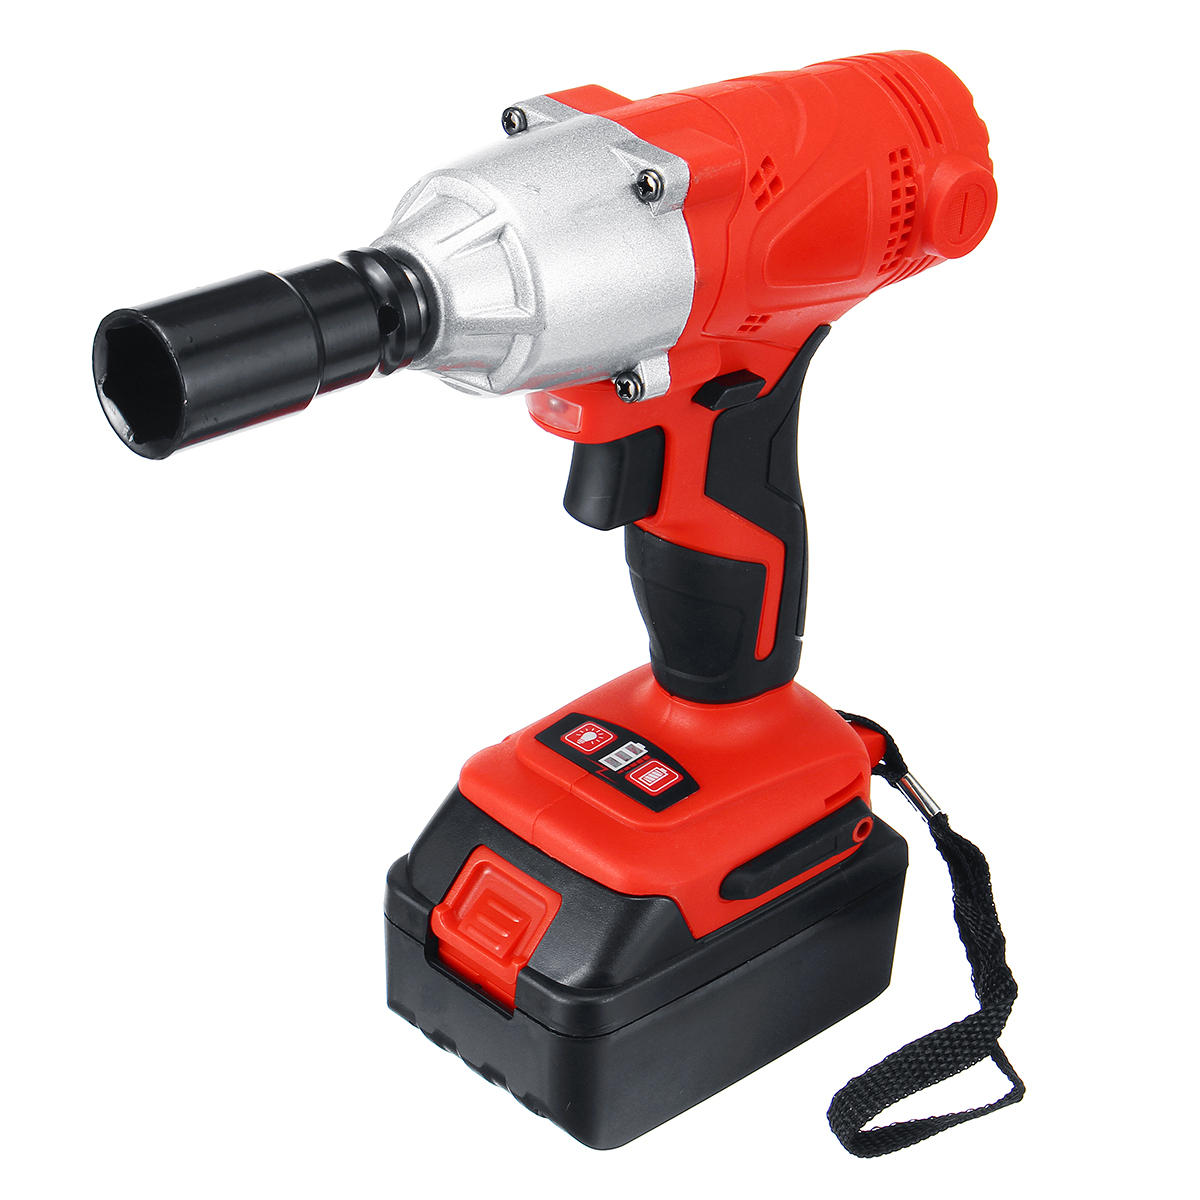 128vf 188vf Electric Wrench 350nm High Torque Impact Cordless 1 2 Batteries Charger Cod